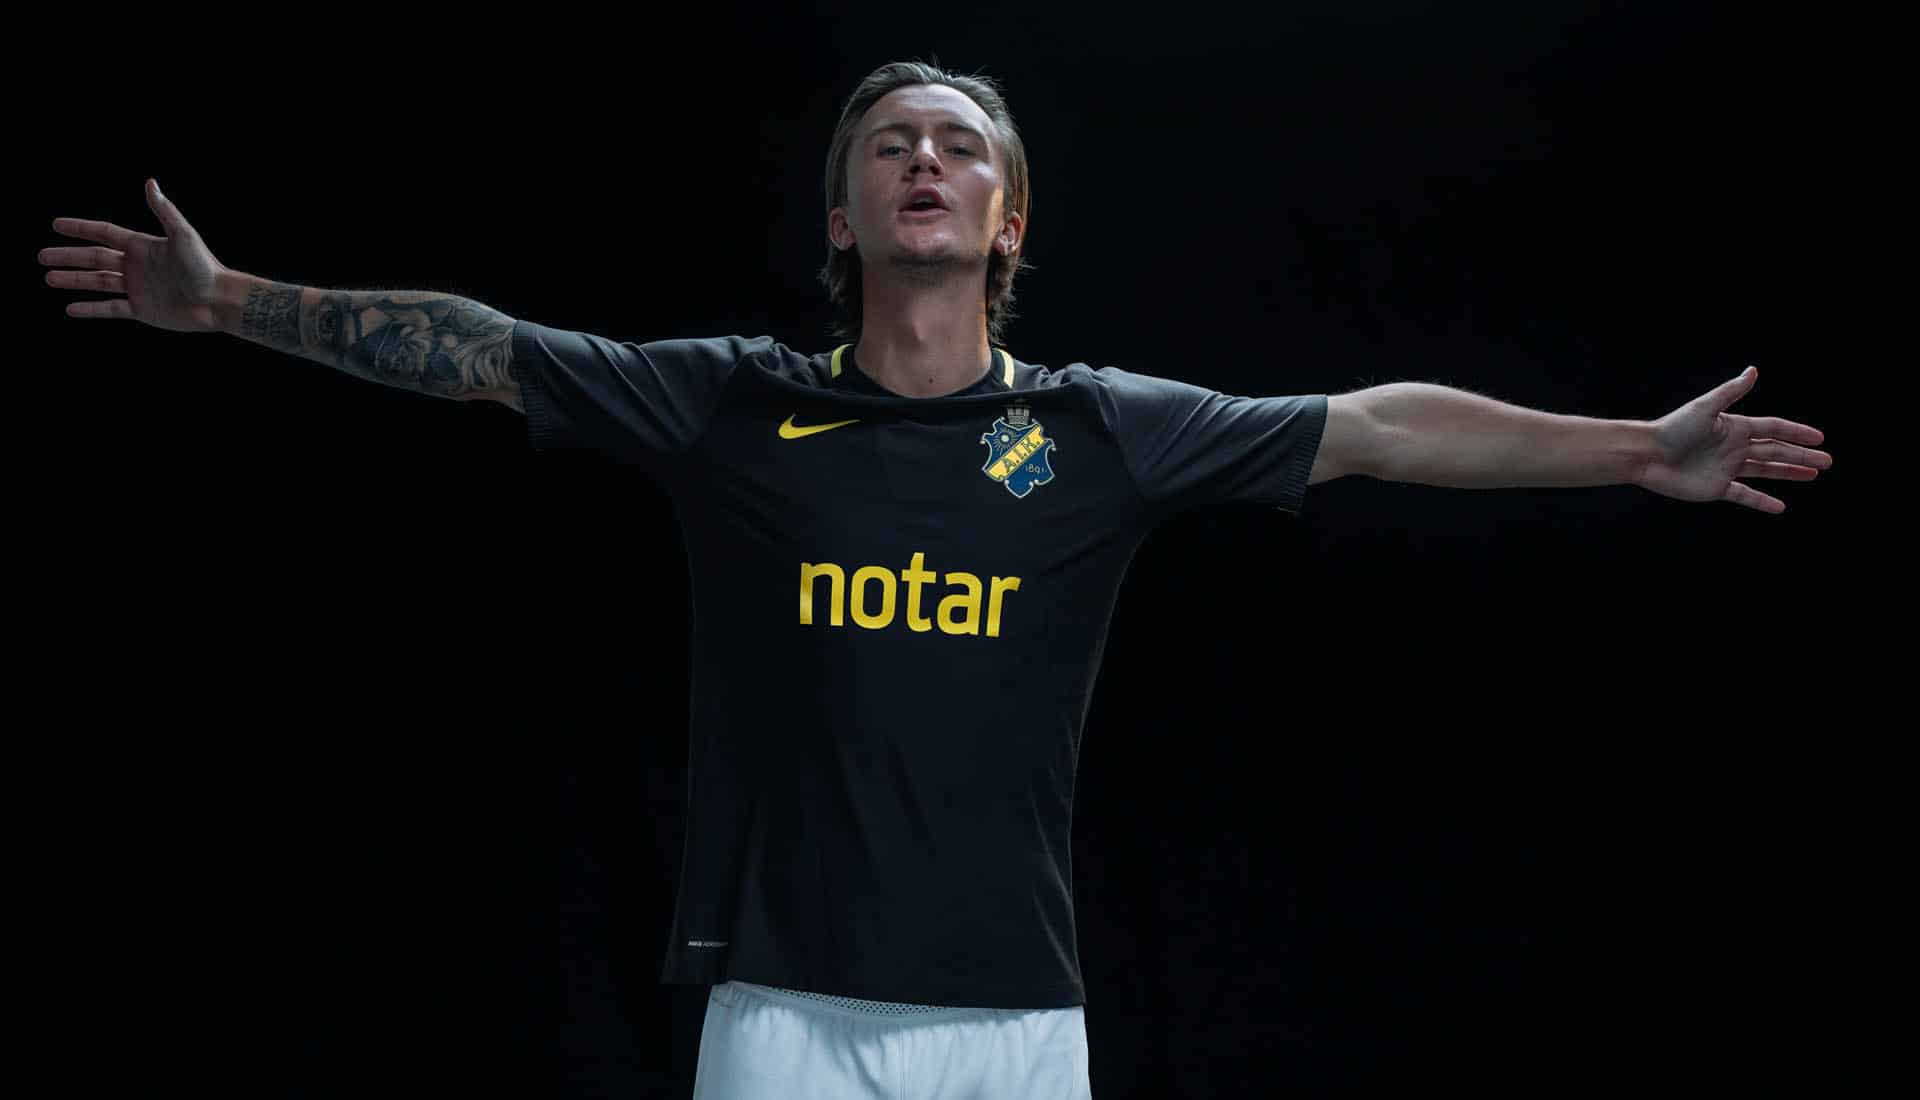 maillot-football-Nike-AIK-domicile-2018-img1